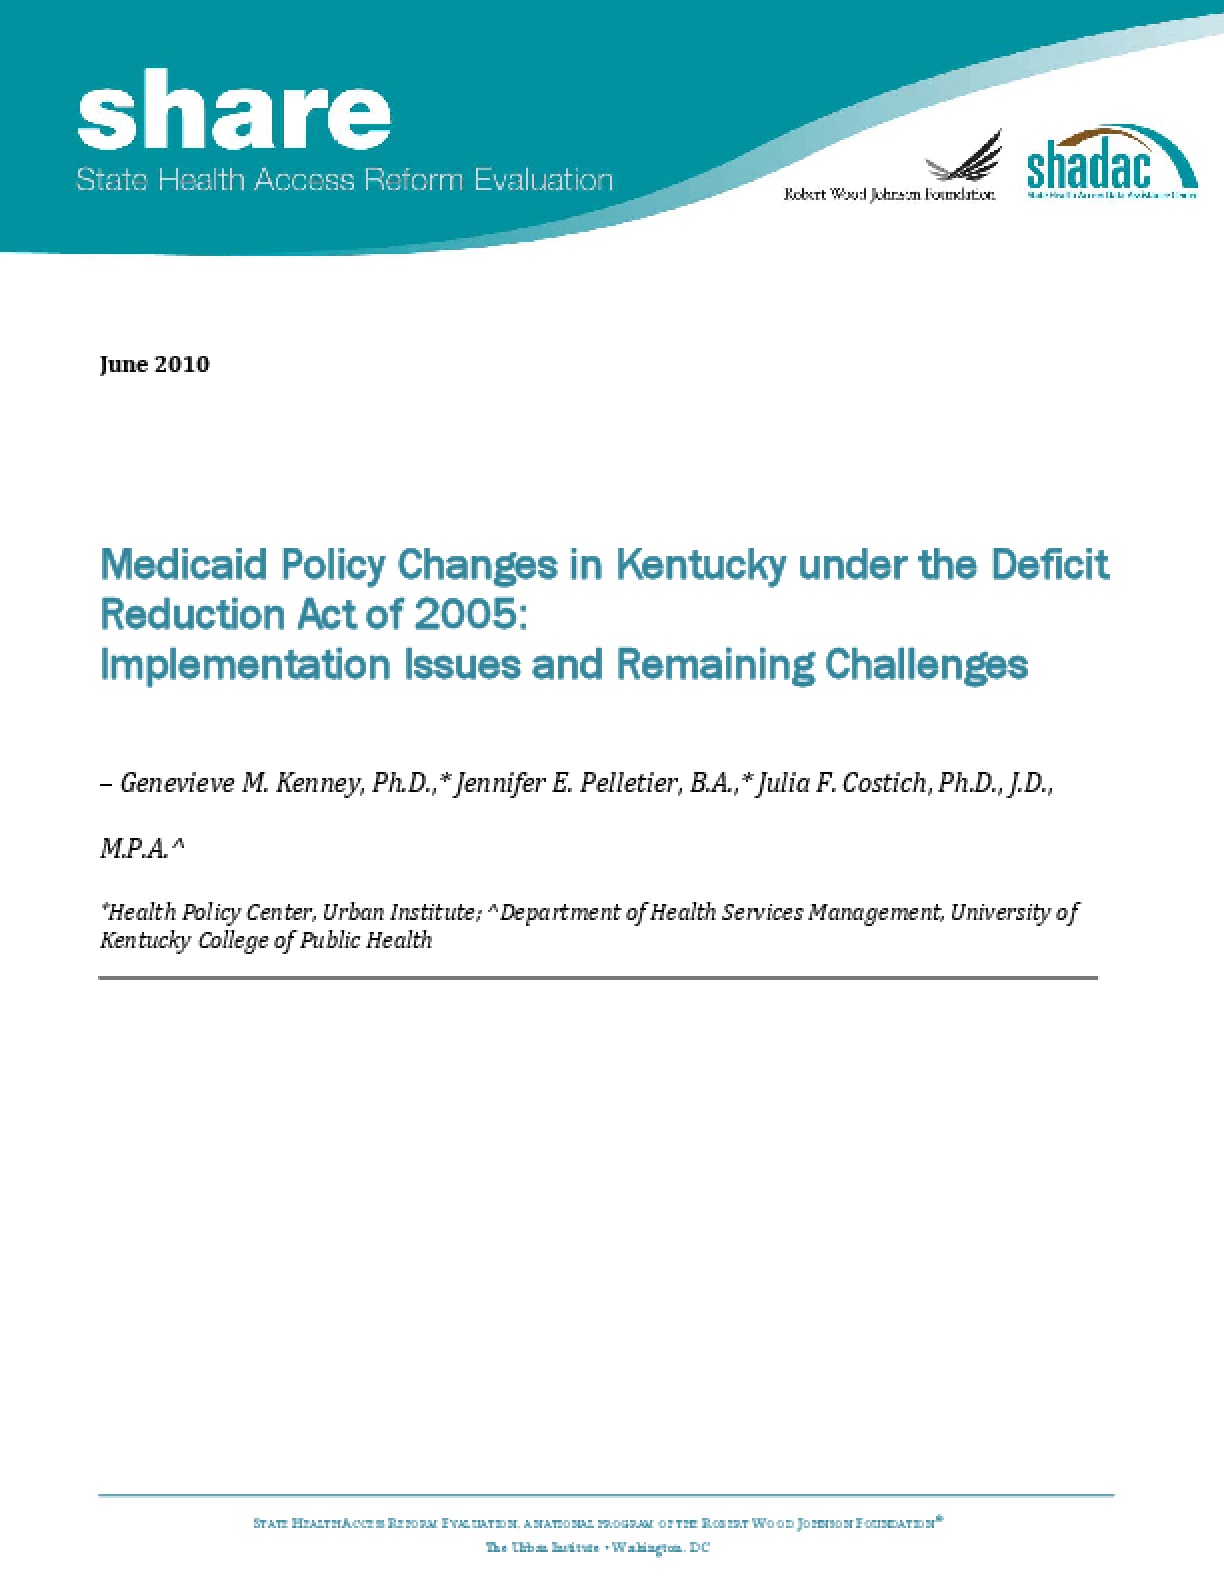 Medicaid Policy Changes in Kentucky Under the Deficit Reduction Act of 2005: Implementation Issues and Remaining Challenges